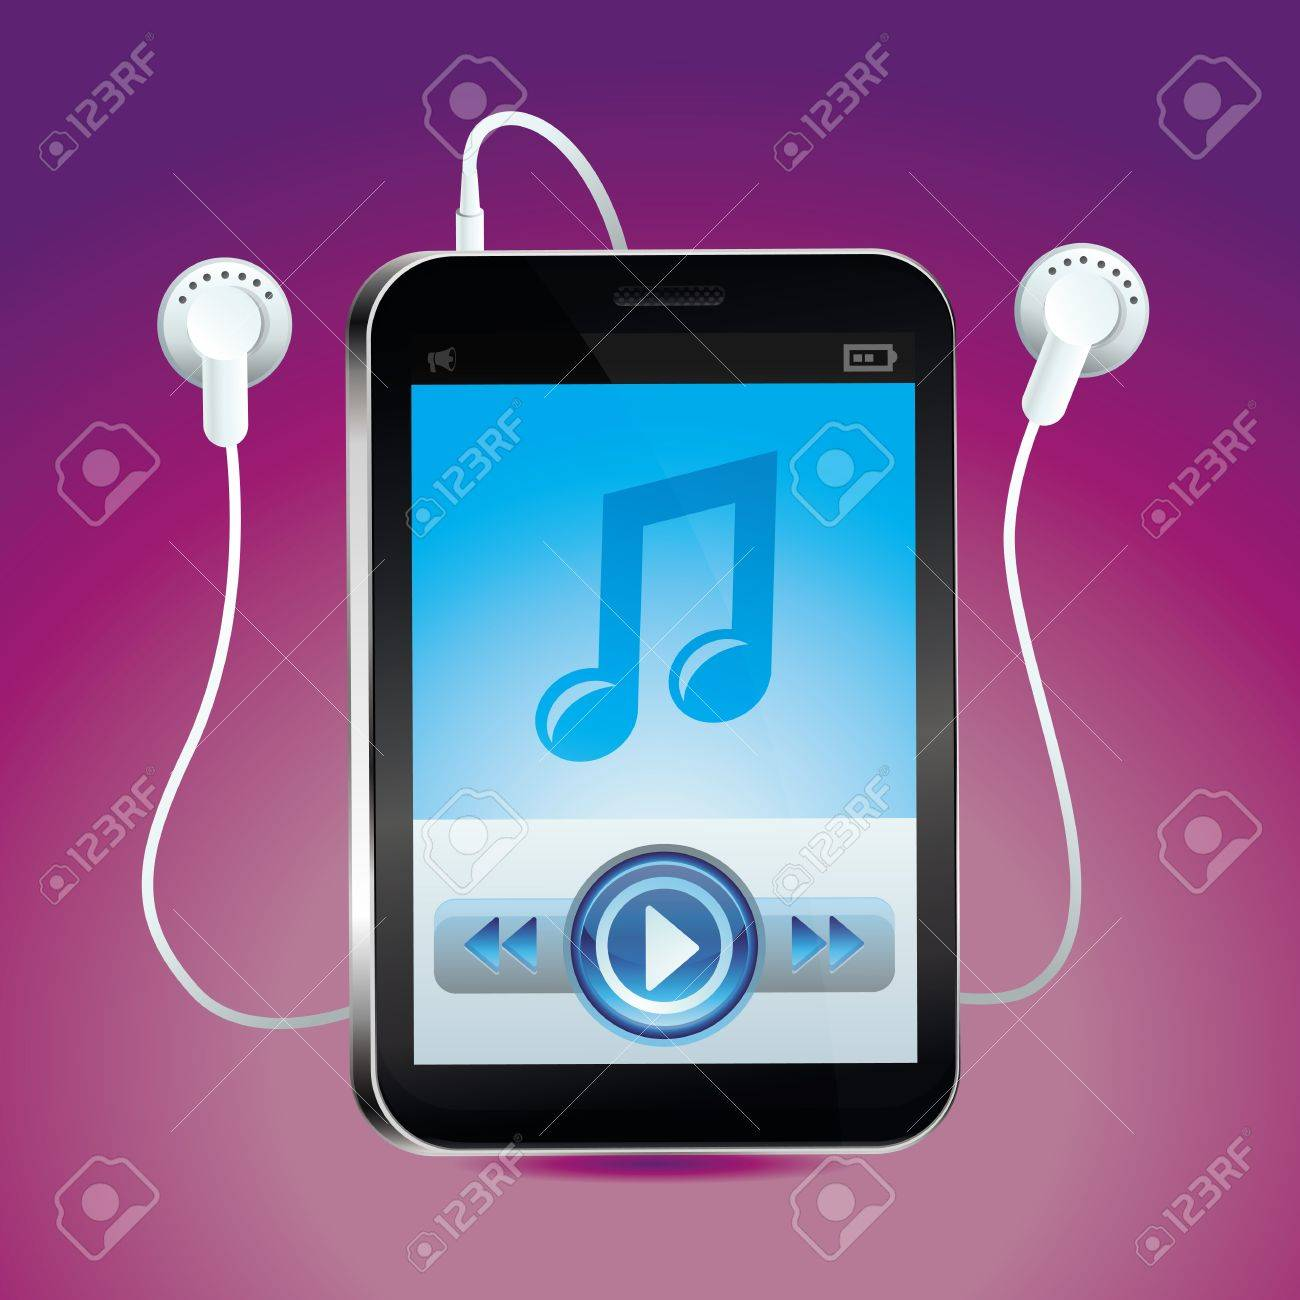 Vector music player with touchscreen and play button - bright icon Stock Vector - 19160214